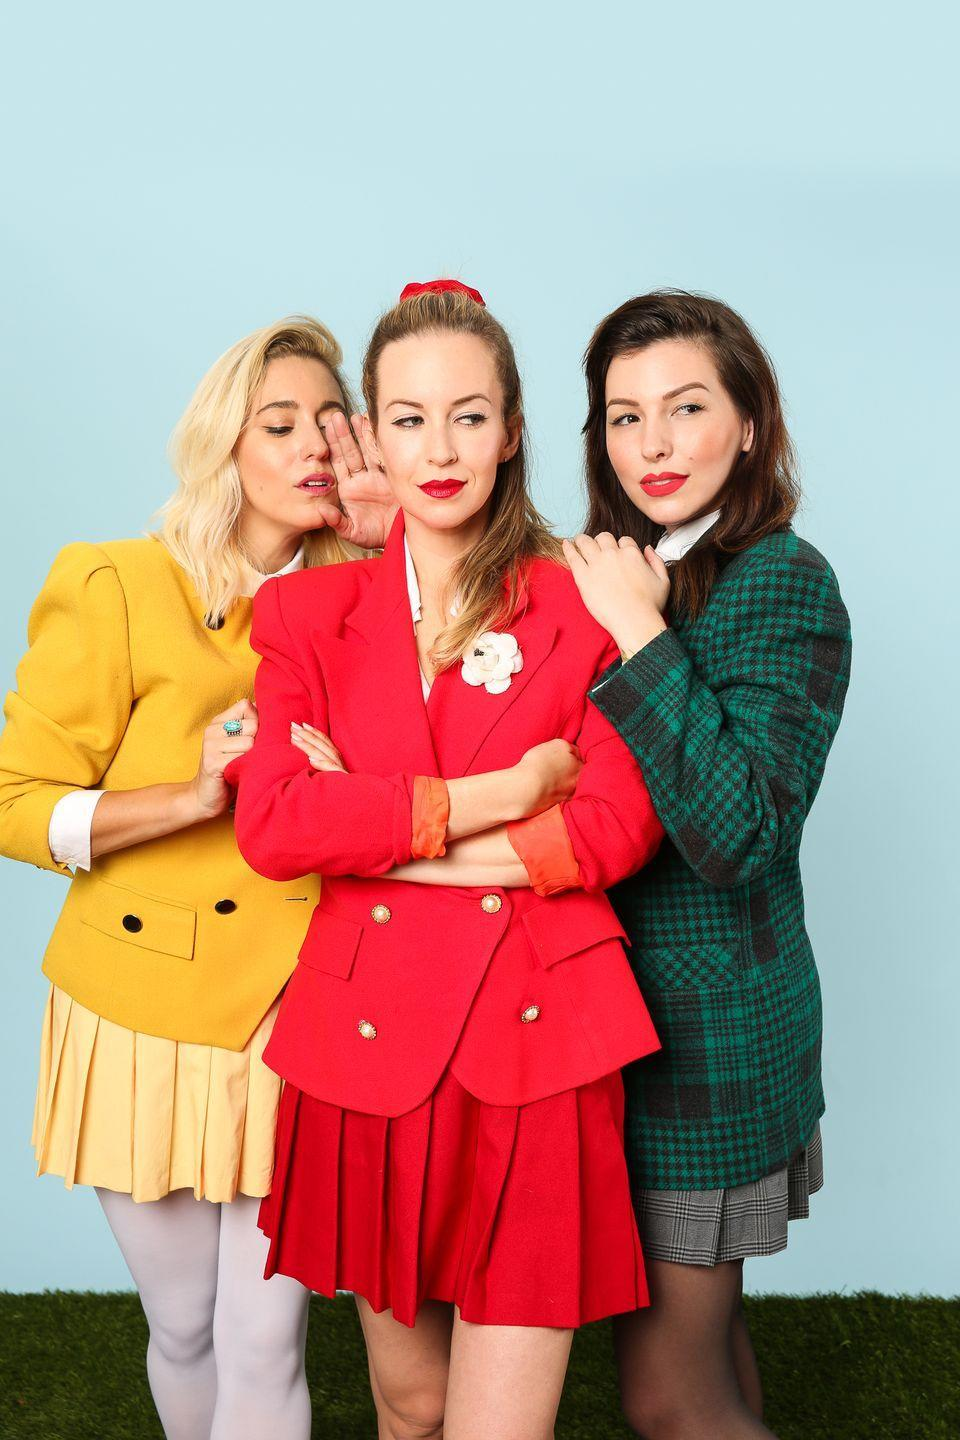 """<p>How very! Grab your two closest frenemies and pay tribute to this dark comedy classic by donning colorful power blazers and matching skirts.</p><p><strong>See more at <a href=""""http://keikolynn.com/2016/10/hea"""" rel=""""nofollow noopener"""" target=""""_blank"""" data-ylk=""""slk:Keiko Lynn"""" class=""""link rapid-noclick-resp"""">Keiko Lynn</a>. </strong></p><p><a class=""""link rapid-noclick-resp"""" href=""""https://go.redirectingat.com?id=74968X1596630&url=https%3A%2F%2Fwww.walmart.com%2Fip%2FFashion-Slim-Cardigan-Temperament-Blazer%2F572969342&sref=https%3A%2F%2Fwww.thepioneerwoman.com%2Fholidays-celebrations%2Fg32645069%2F80s-halloween-costumes%2F"""" rel=""""nofollow noopener"""" target=""""_blank"""" data-ylk=""""slk:SHOP BLAZERS"""">SHOP BLAZERS</a></p>"""